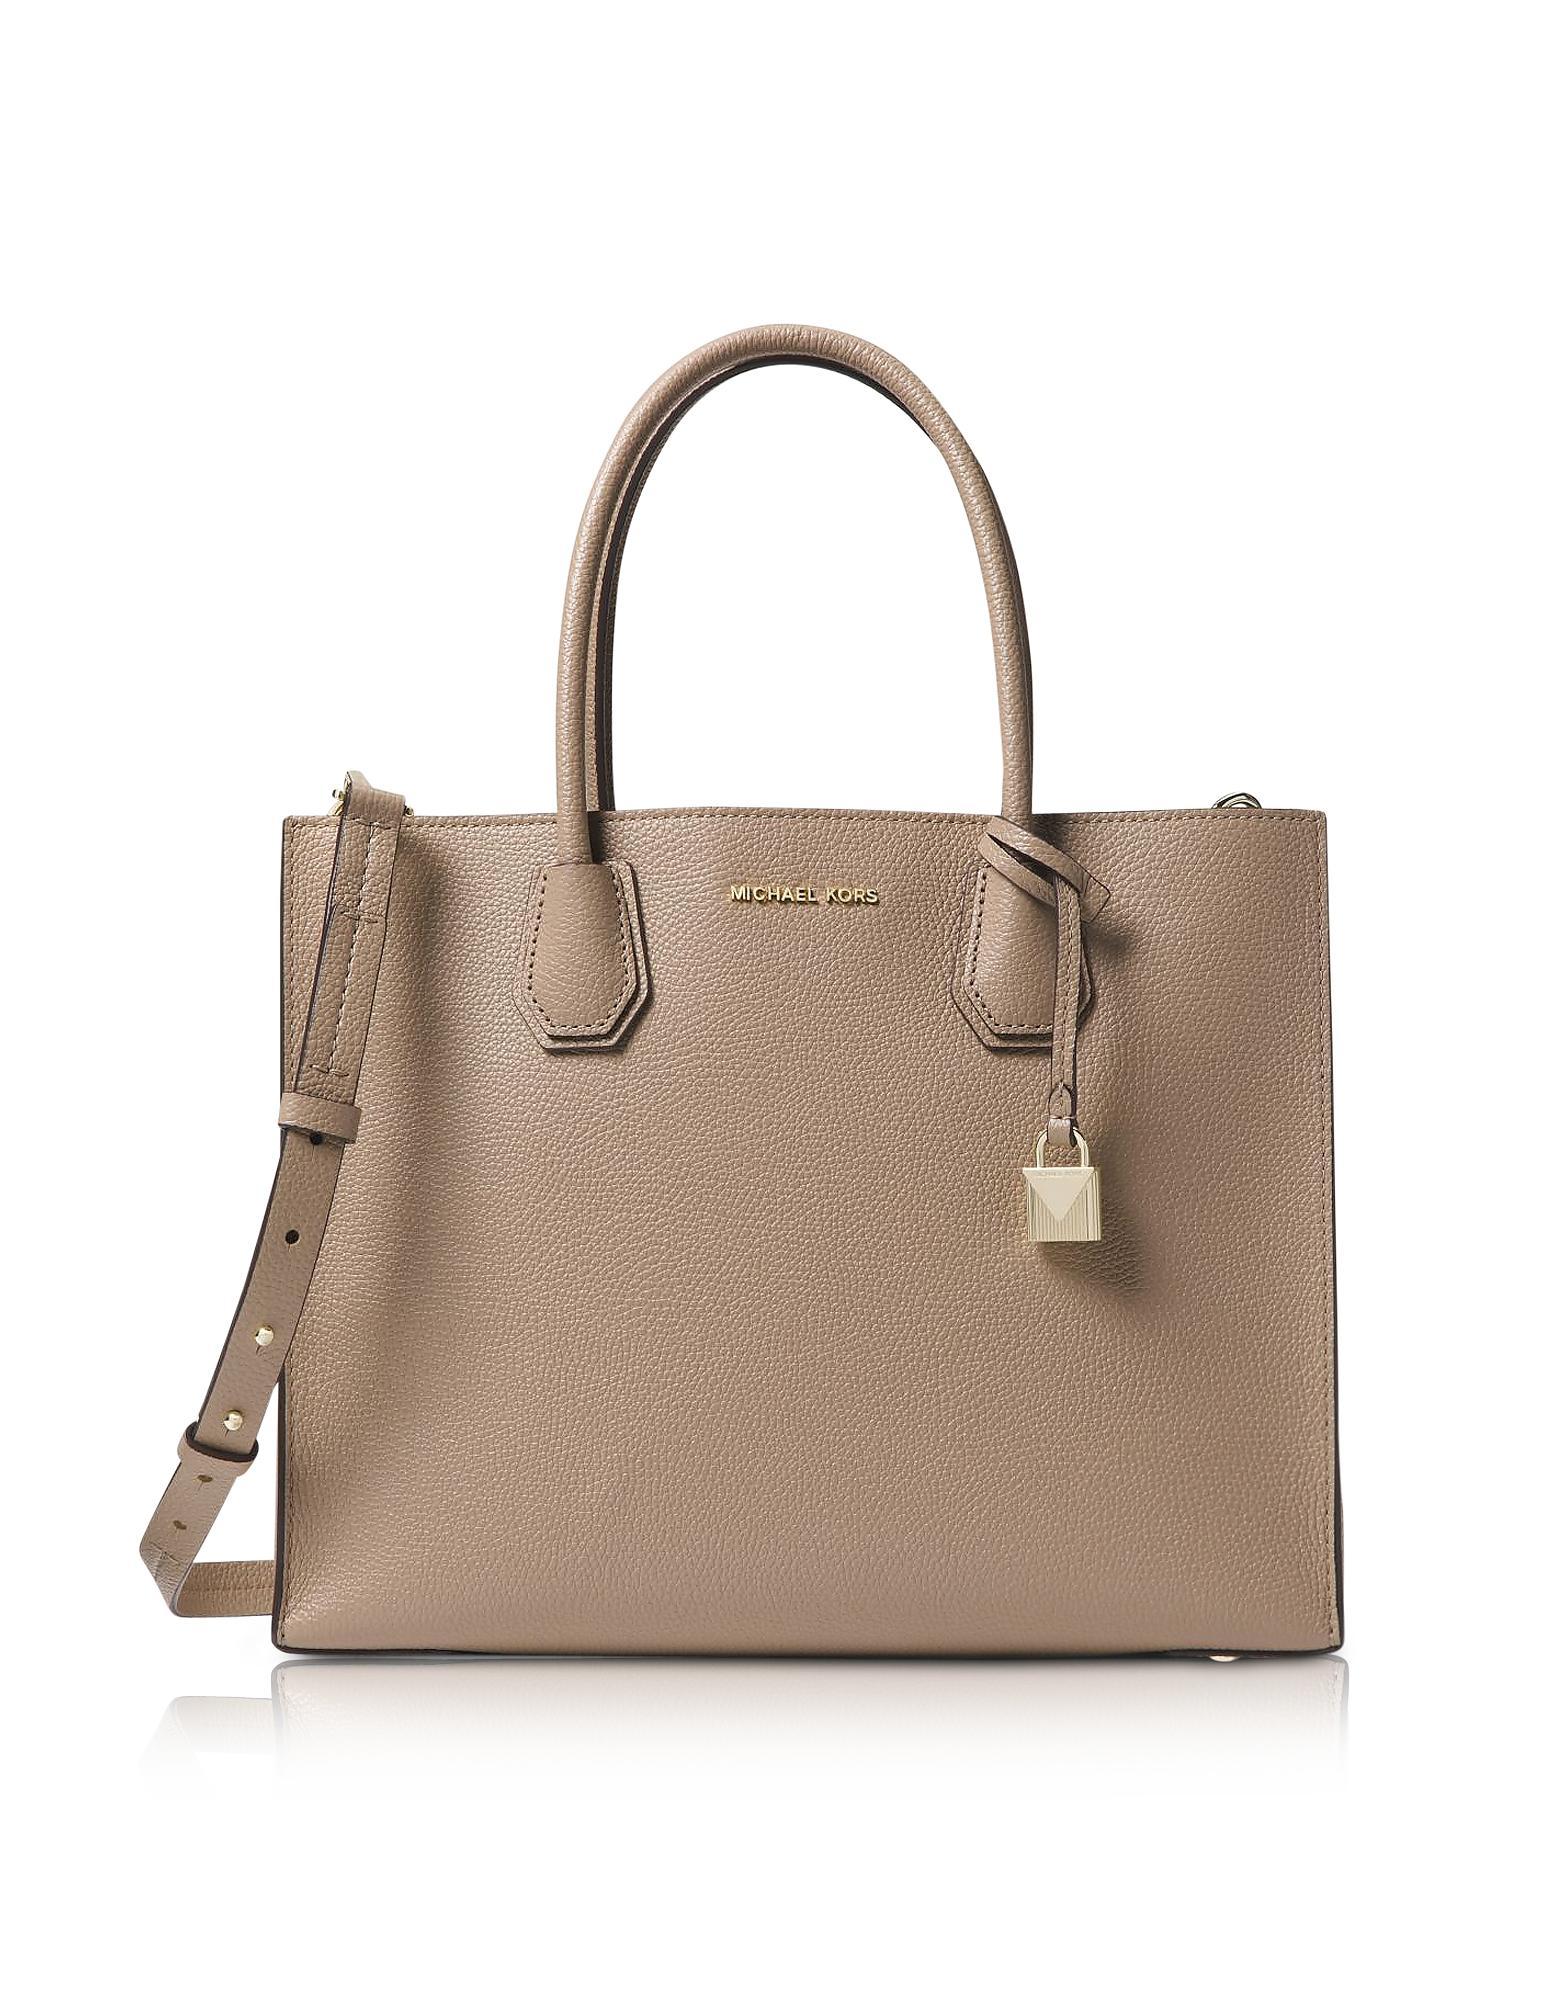 d3af88195bafbe Michael Kors - Natural Truffle Mercer Large Convertible Tote Bag - Lyst.  View fullscreen